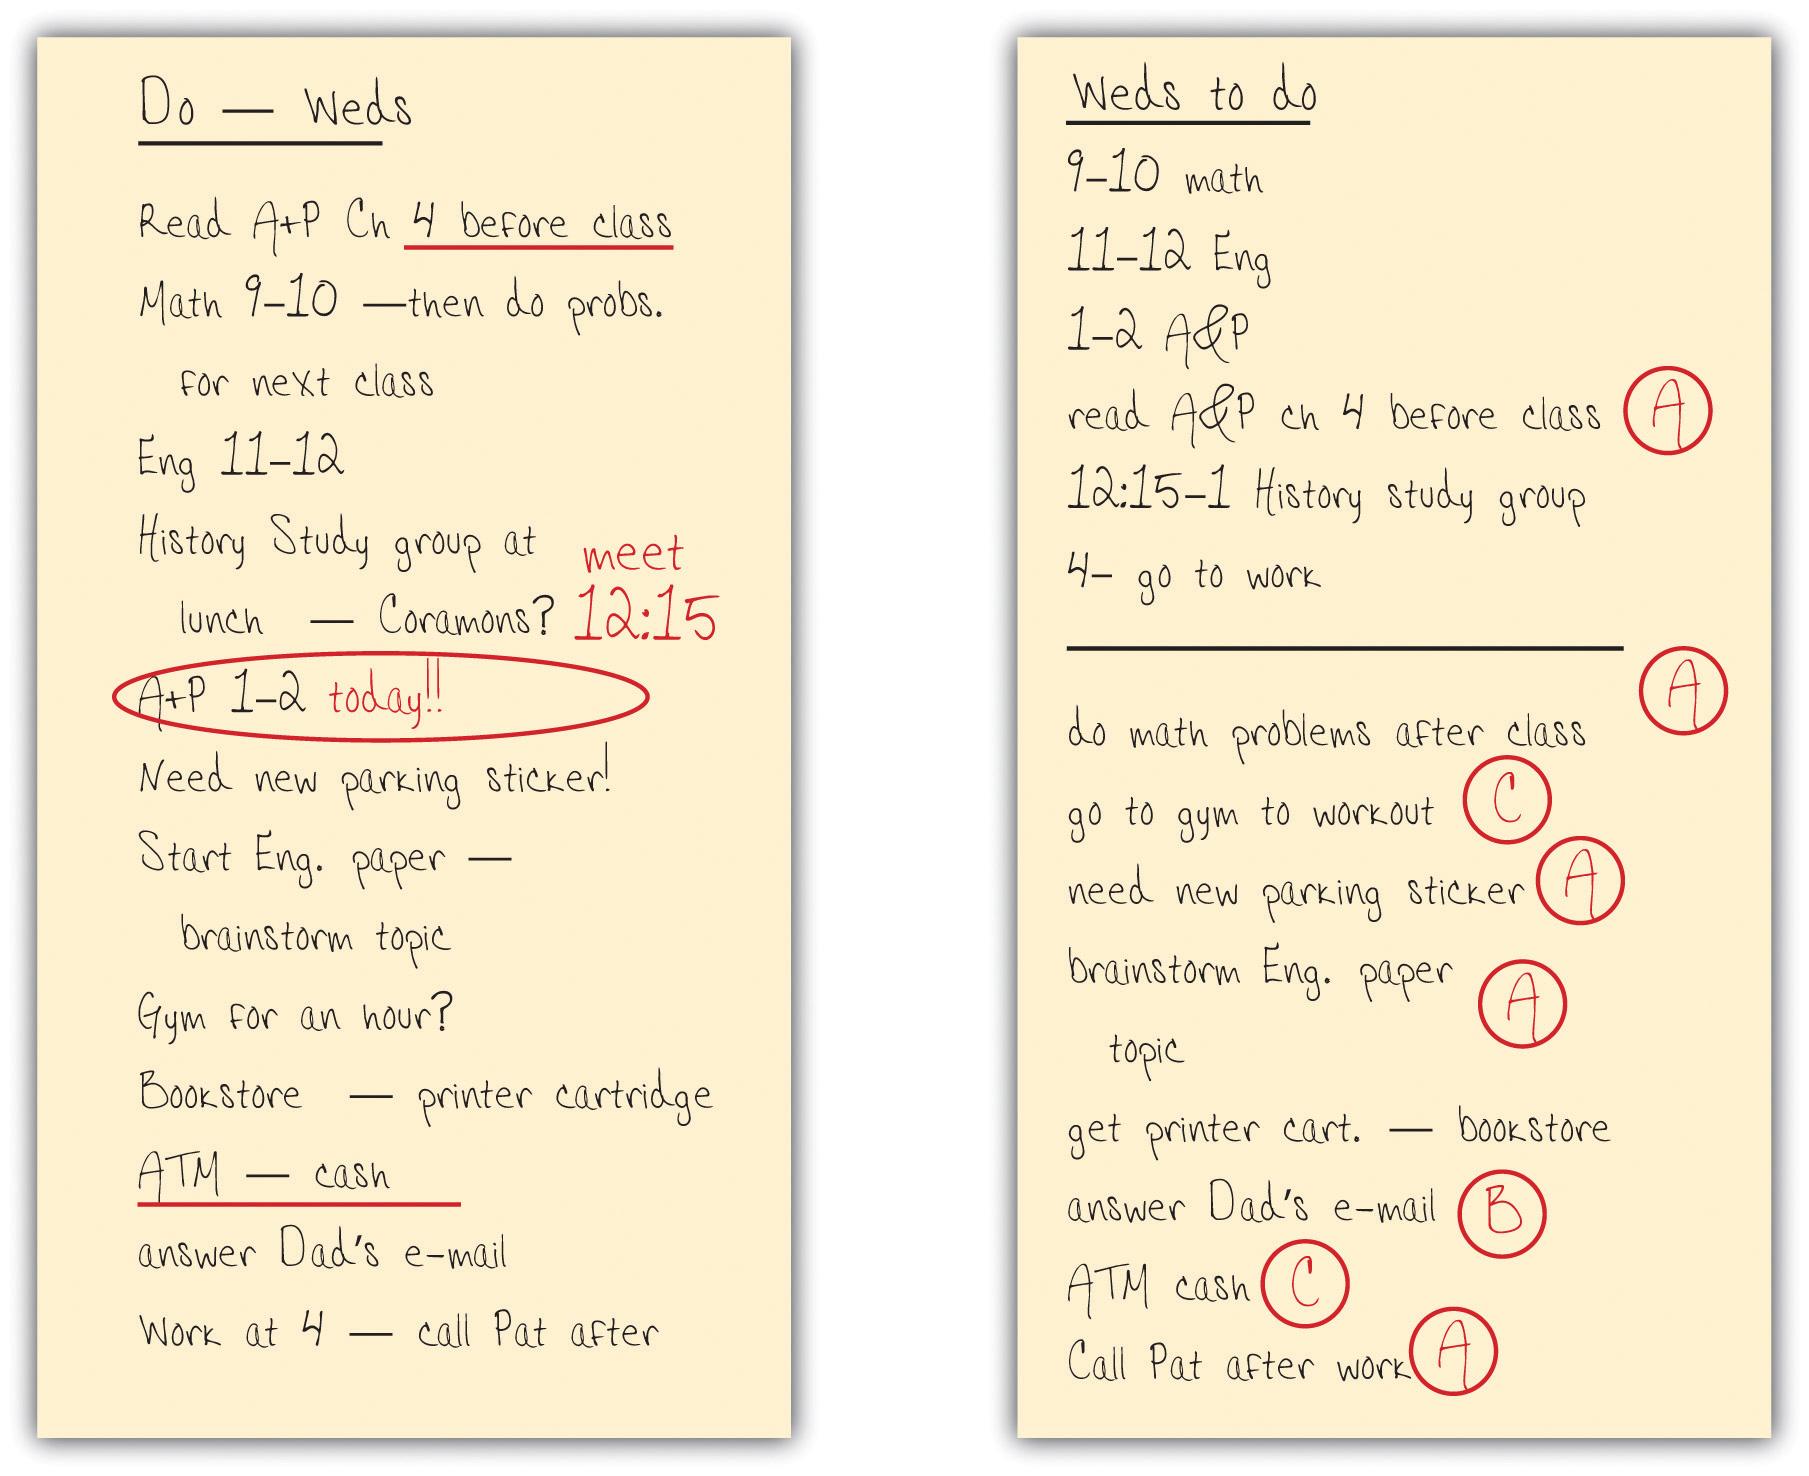 Examples of Two Different Student's To-Do Lists. One simple has times and descriptions, and one has a rating system of what is most important